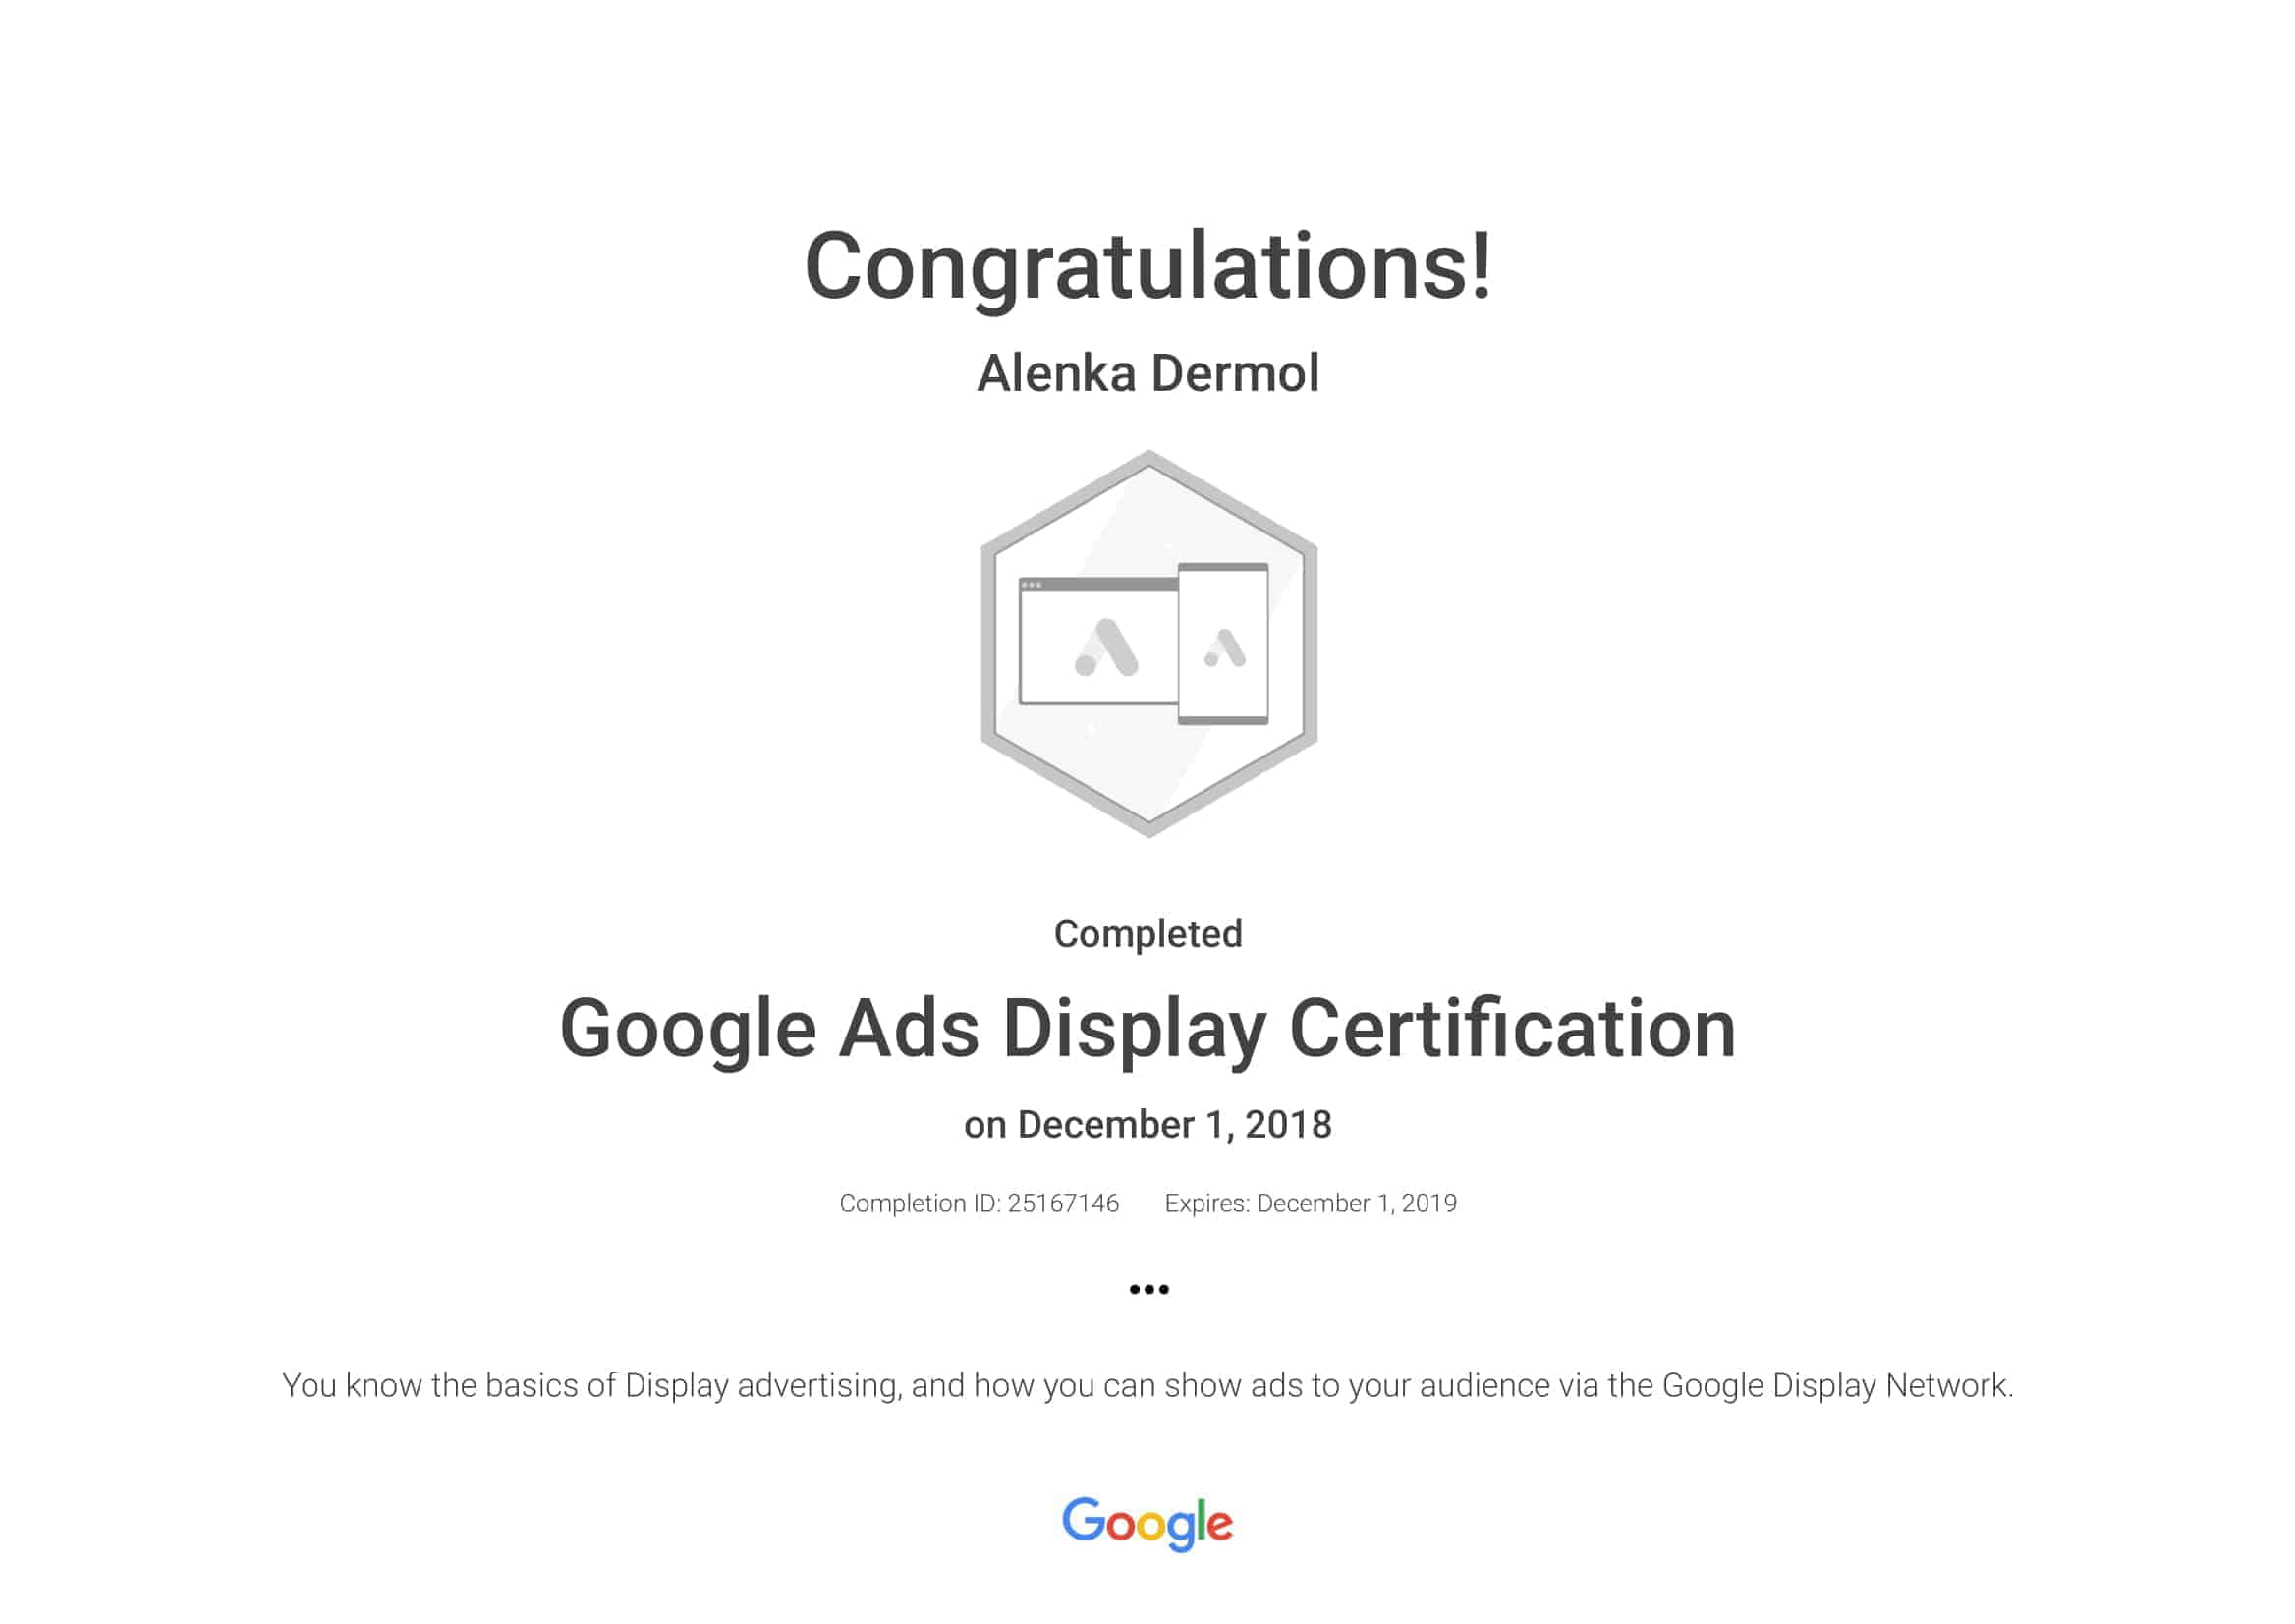 Google-Ads-Display-Certification-Alenka-Dermol